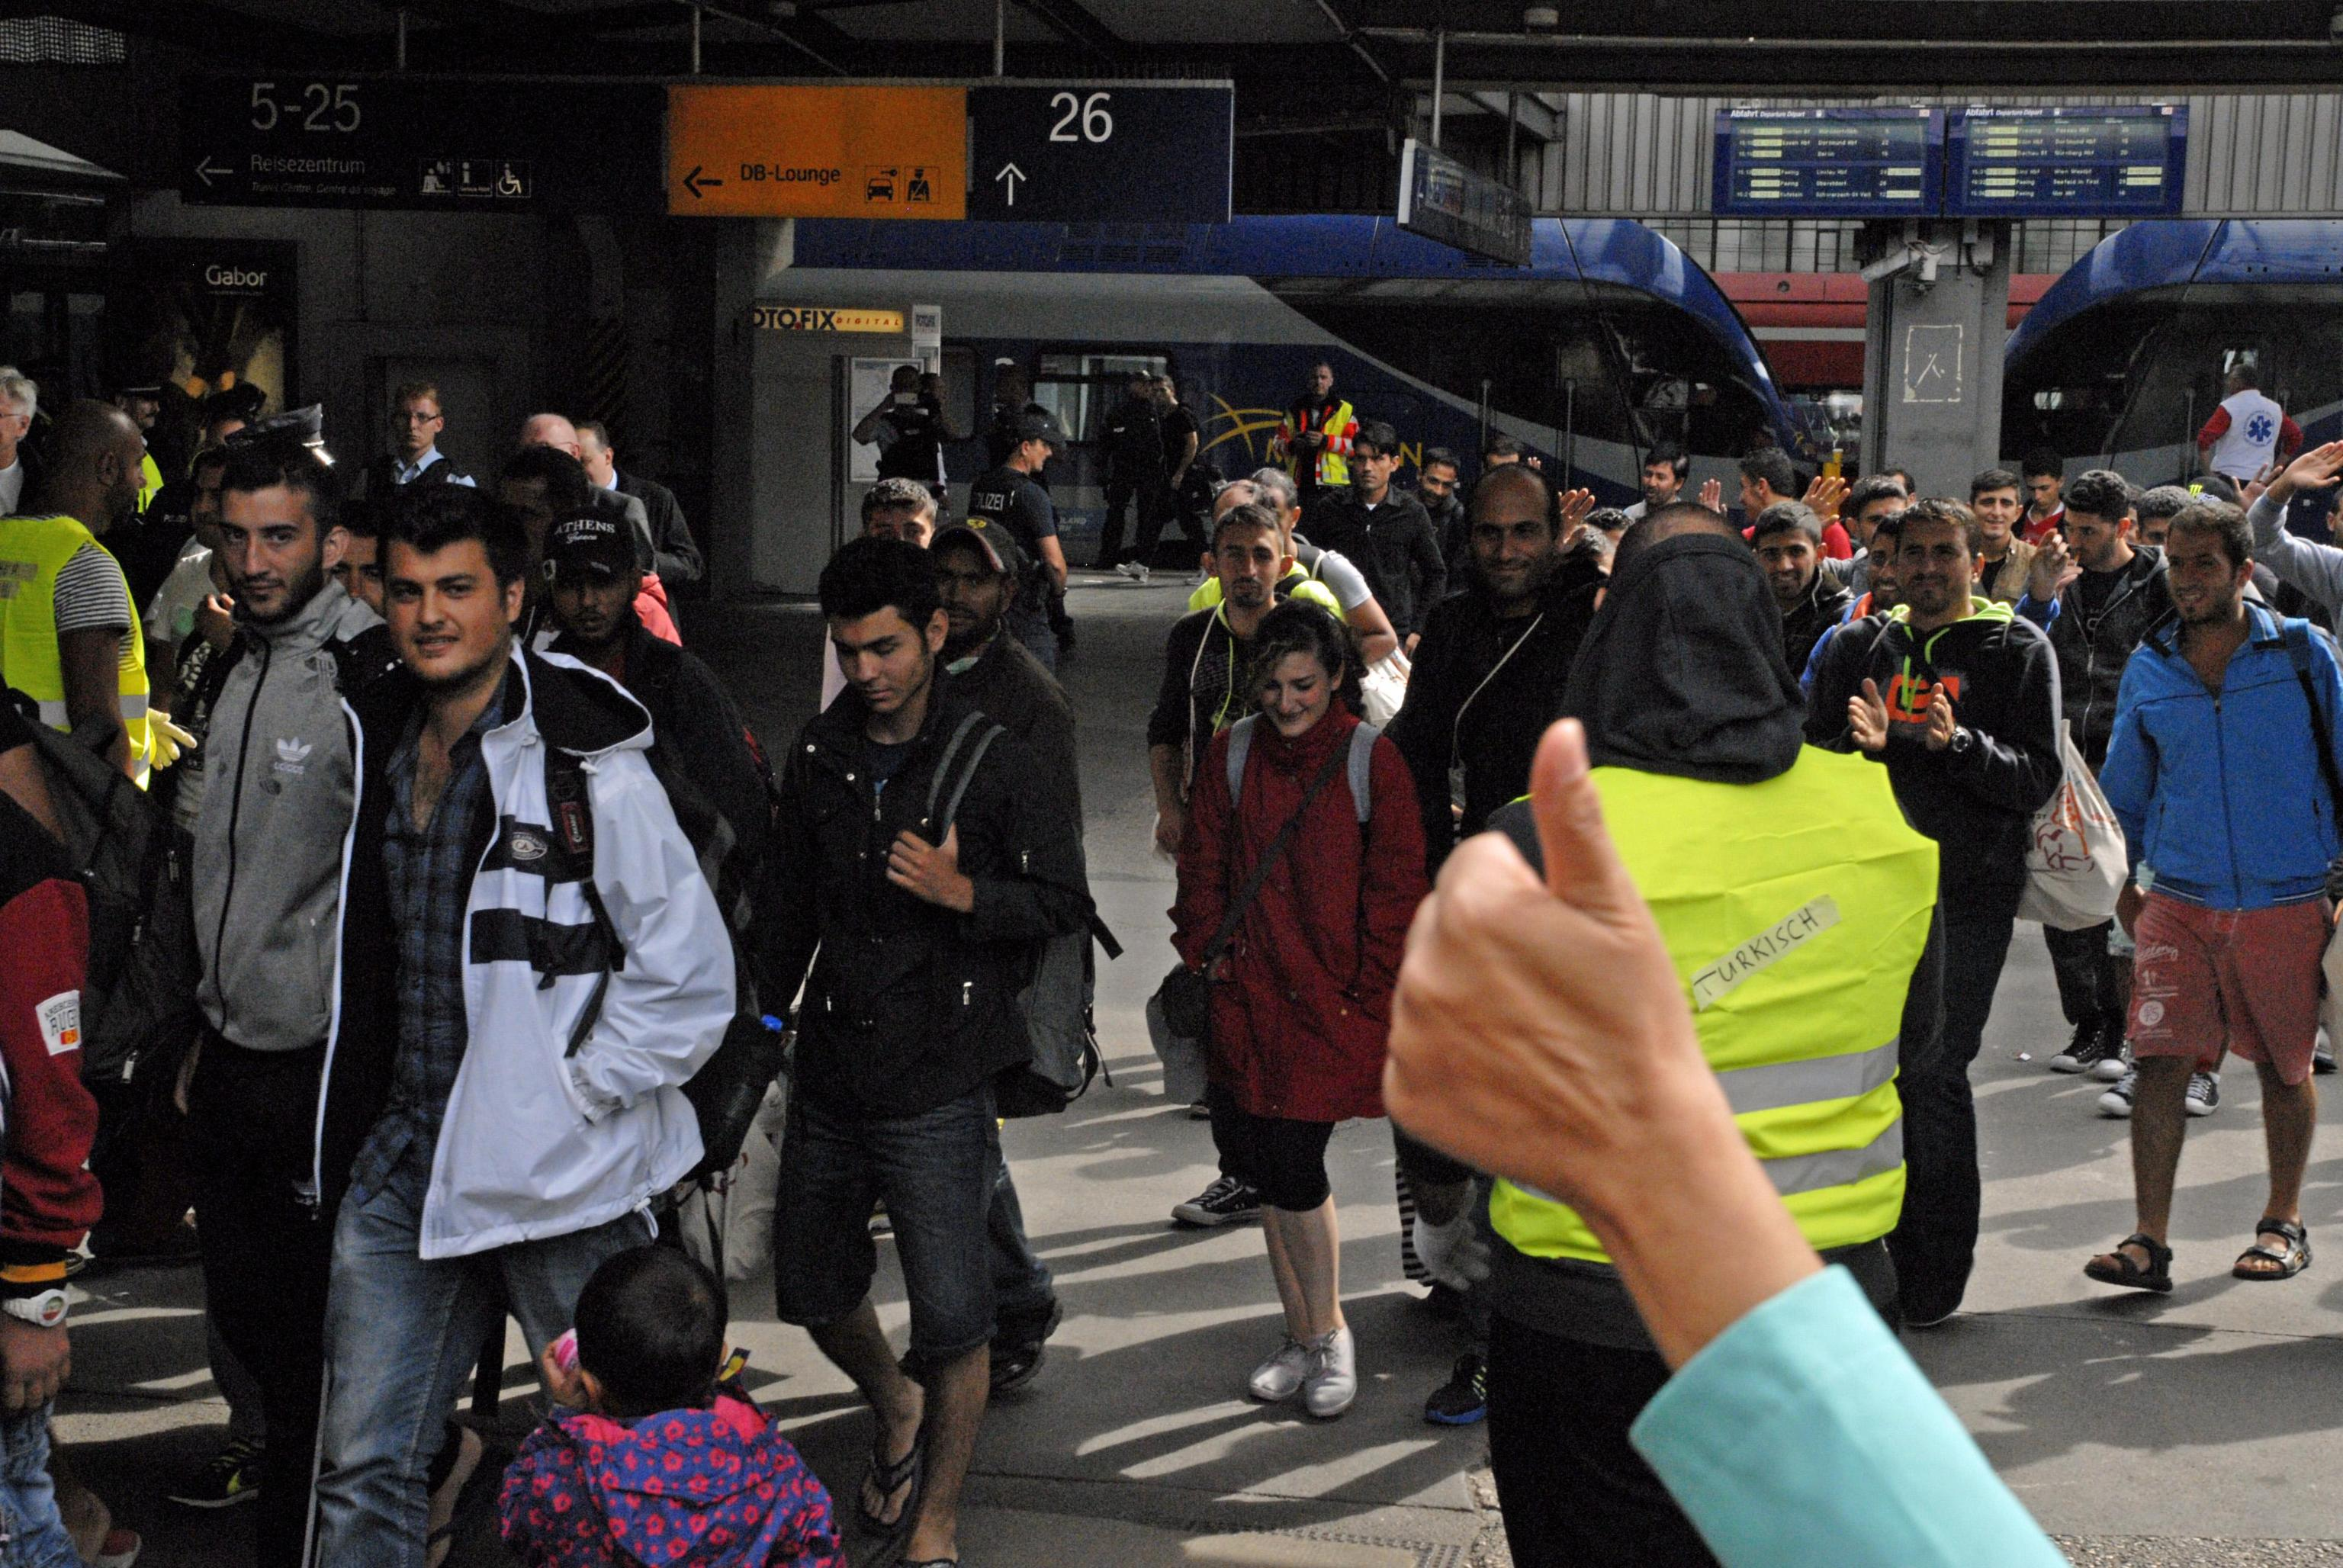 Train carrying about 500 mostly Syrian refugees arrived from Austria in Munich